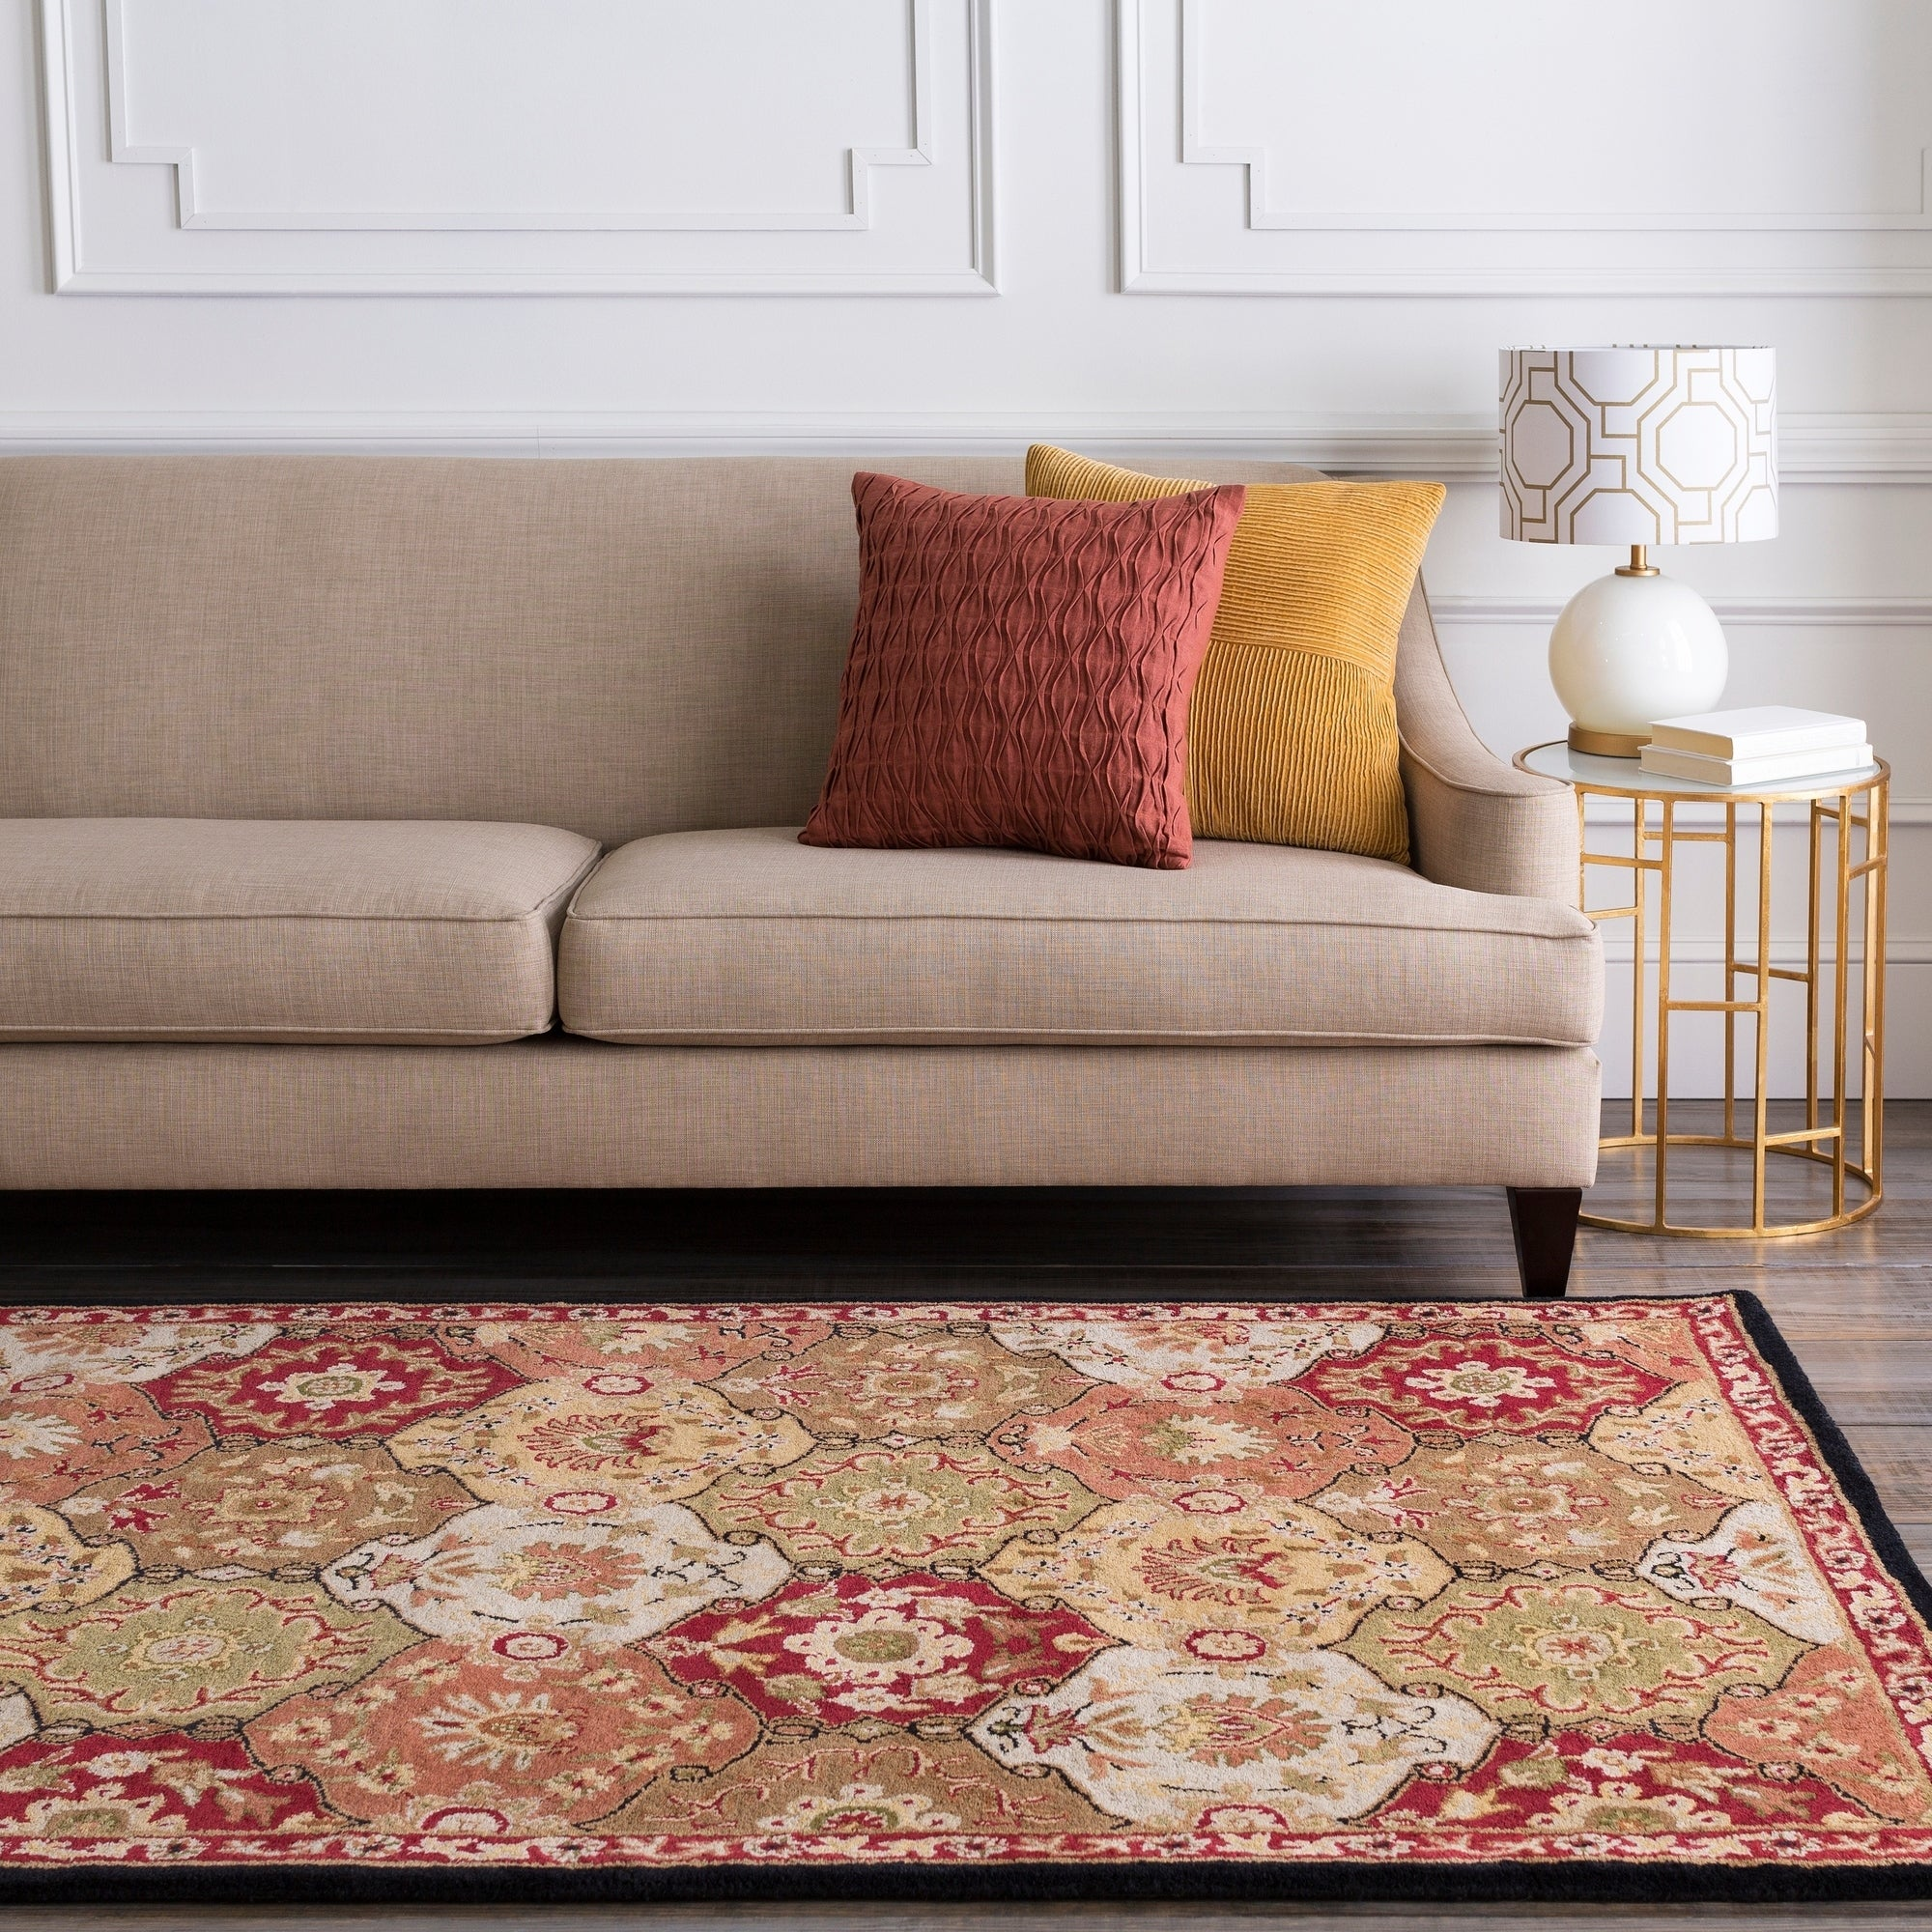 Hand-tufted Red Alum Wool Rug (4' x 6'), Multi, Size 4' x 6'